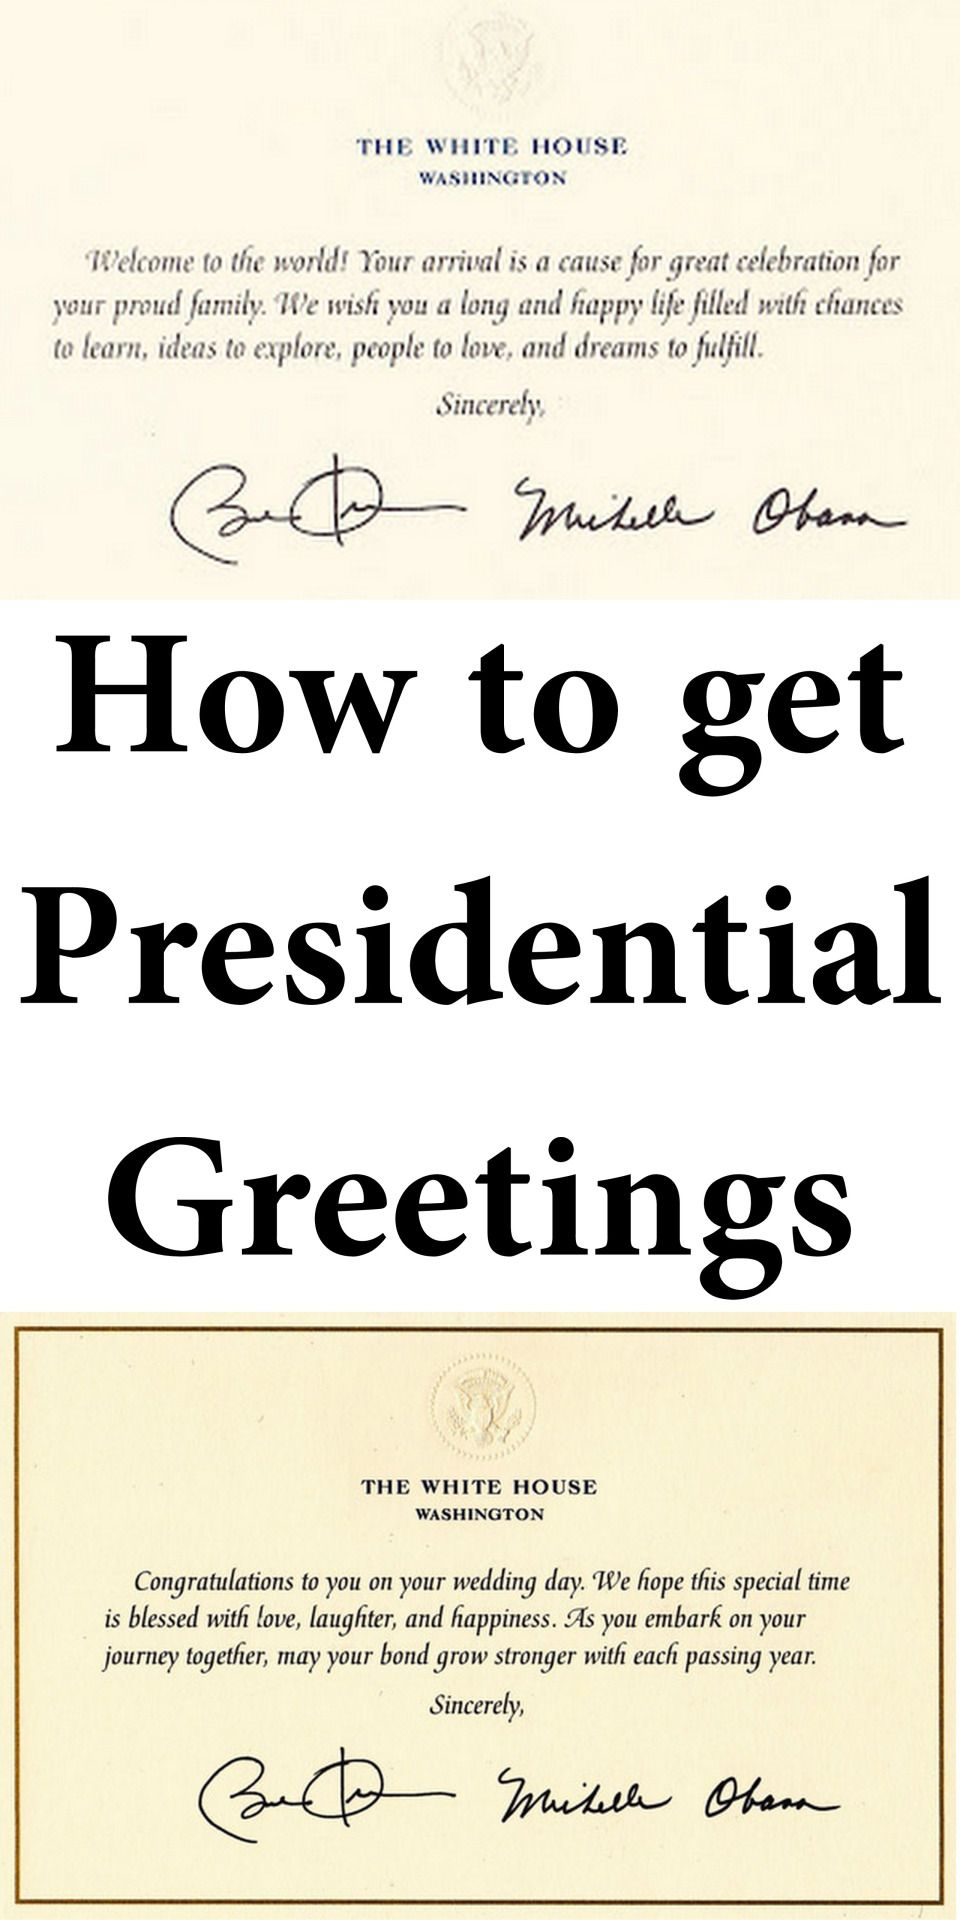 Reposting because time is running out to get presidential greetings because time is running out to get presidential greetings from the president and mrs obama how to get presidential greetings from the white house kristyandbryce Image collections